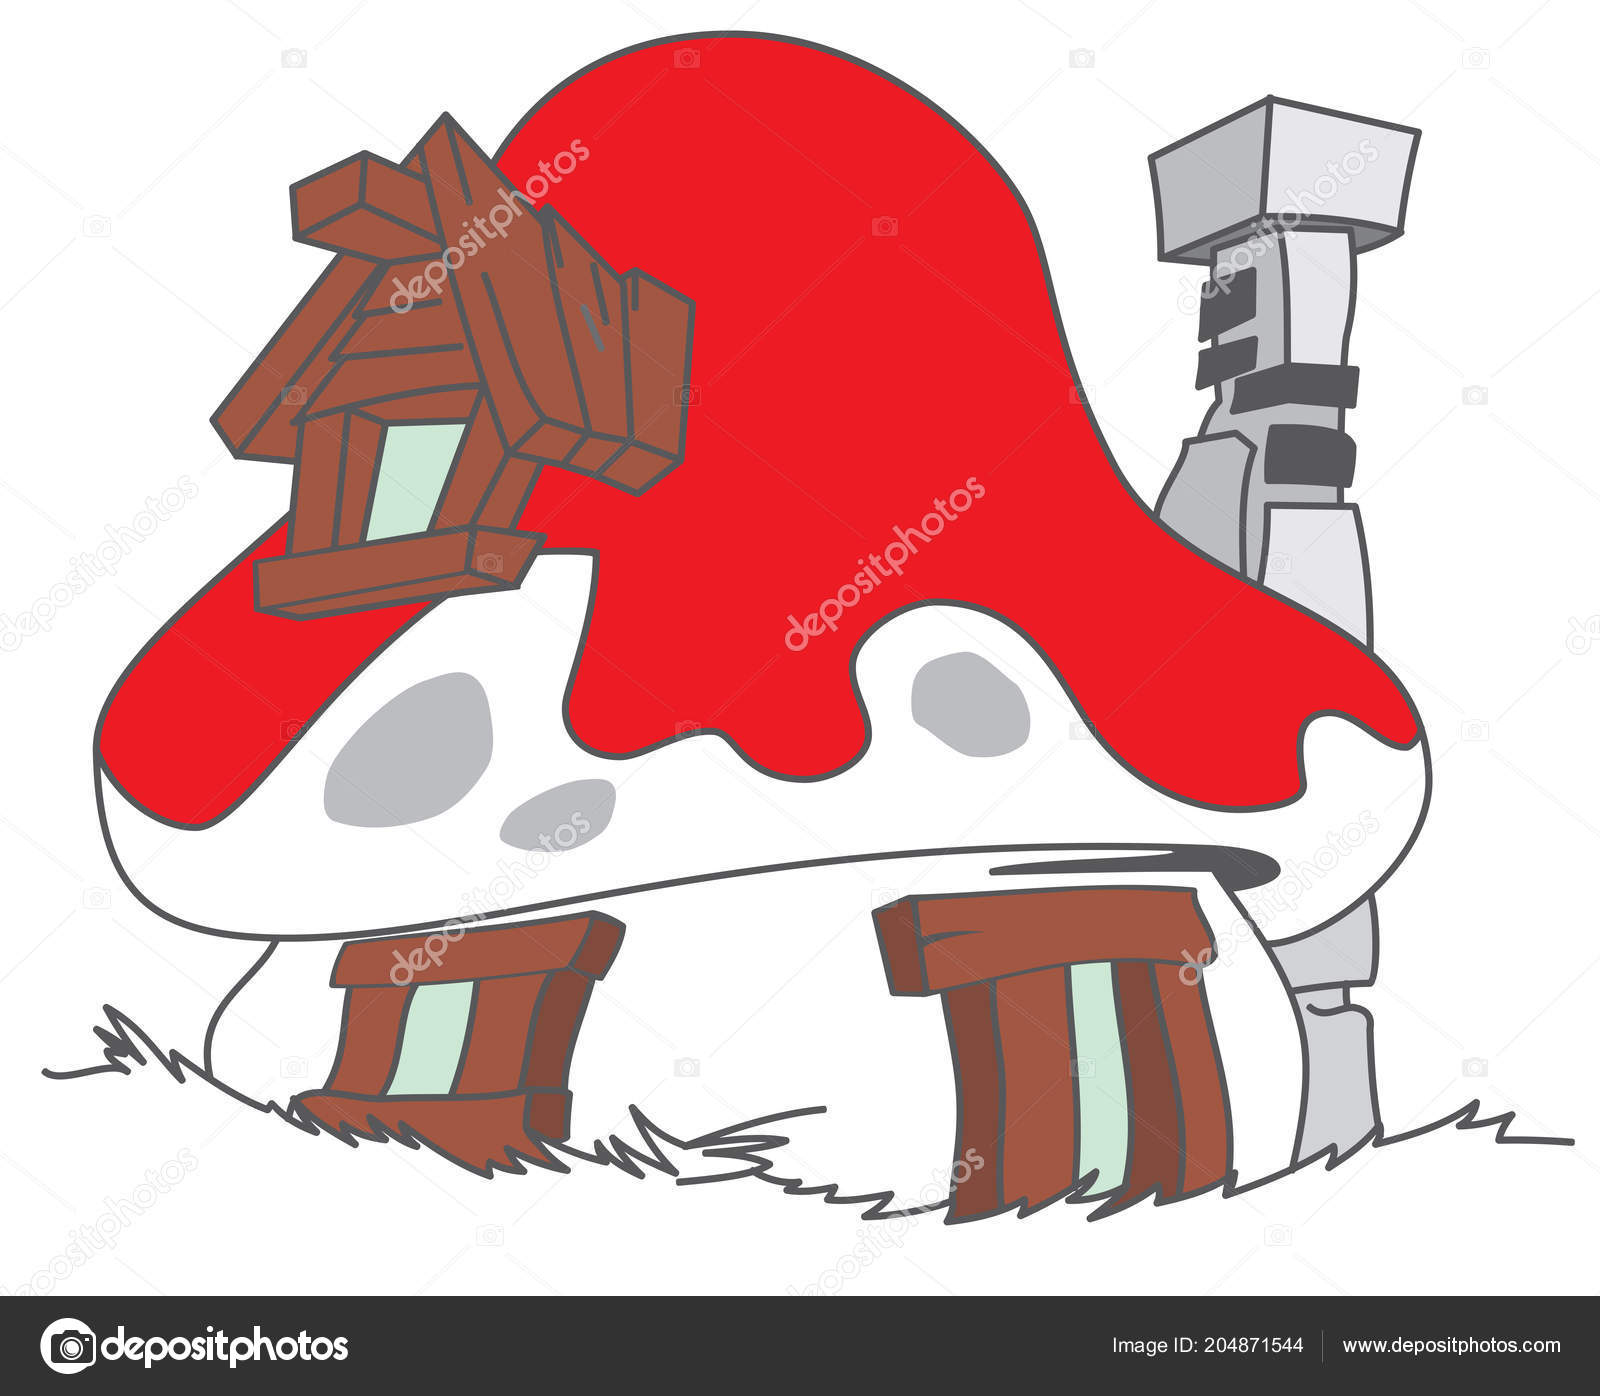 Maison schtroumpf cartoon illustration aux champignons images de stock libres de droits